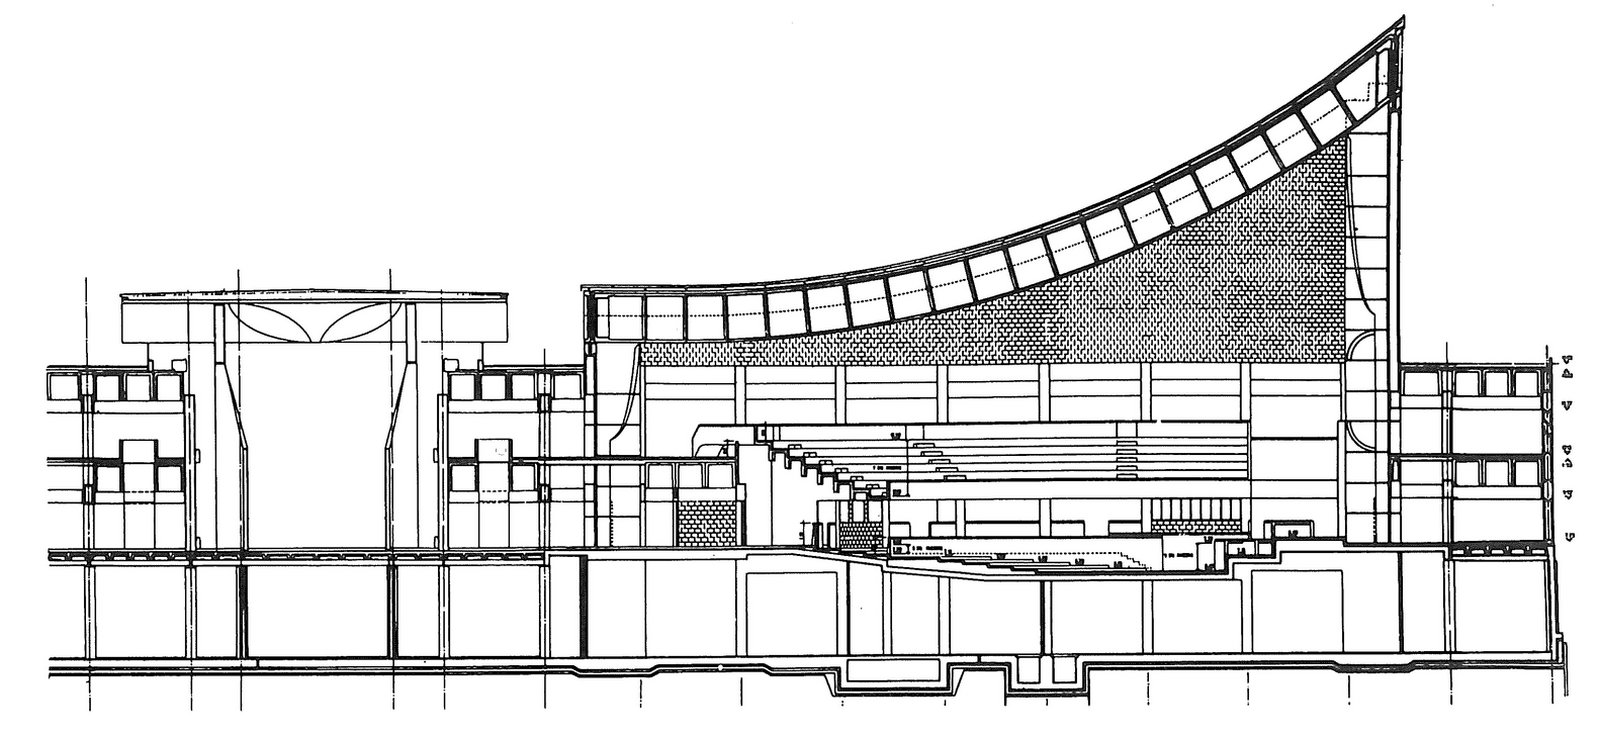 Kuwait National Assembly Building by Jørn Utzon: Architecture inspired from Bazaars - Sheet9